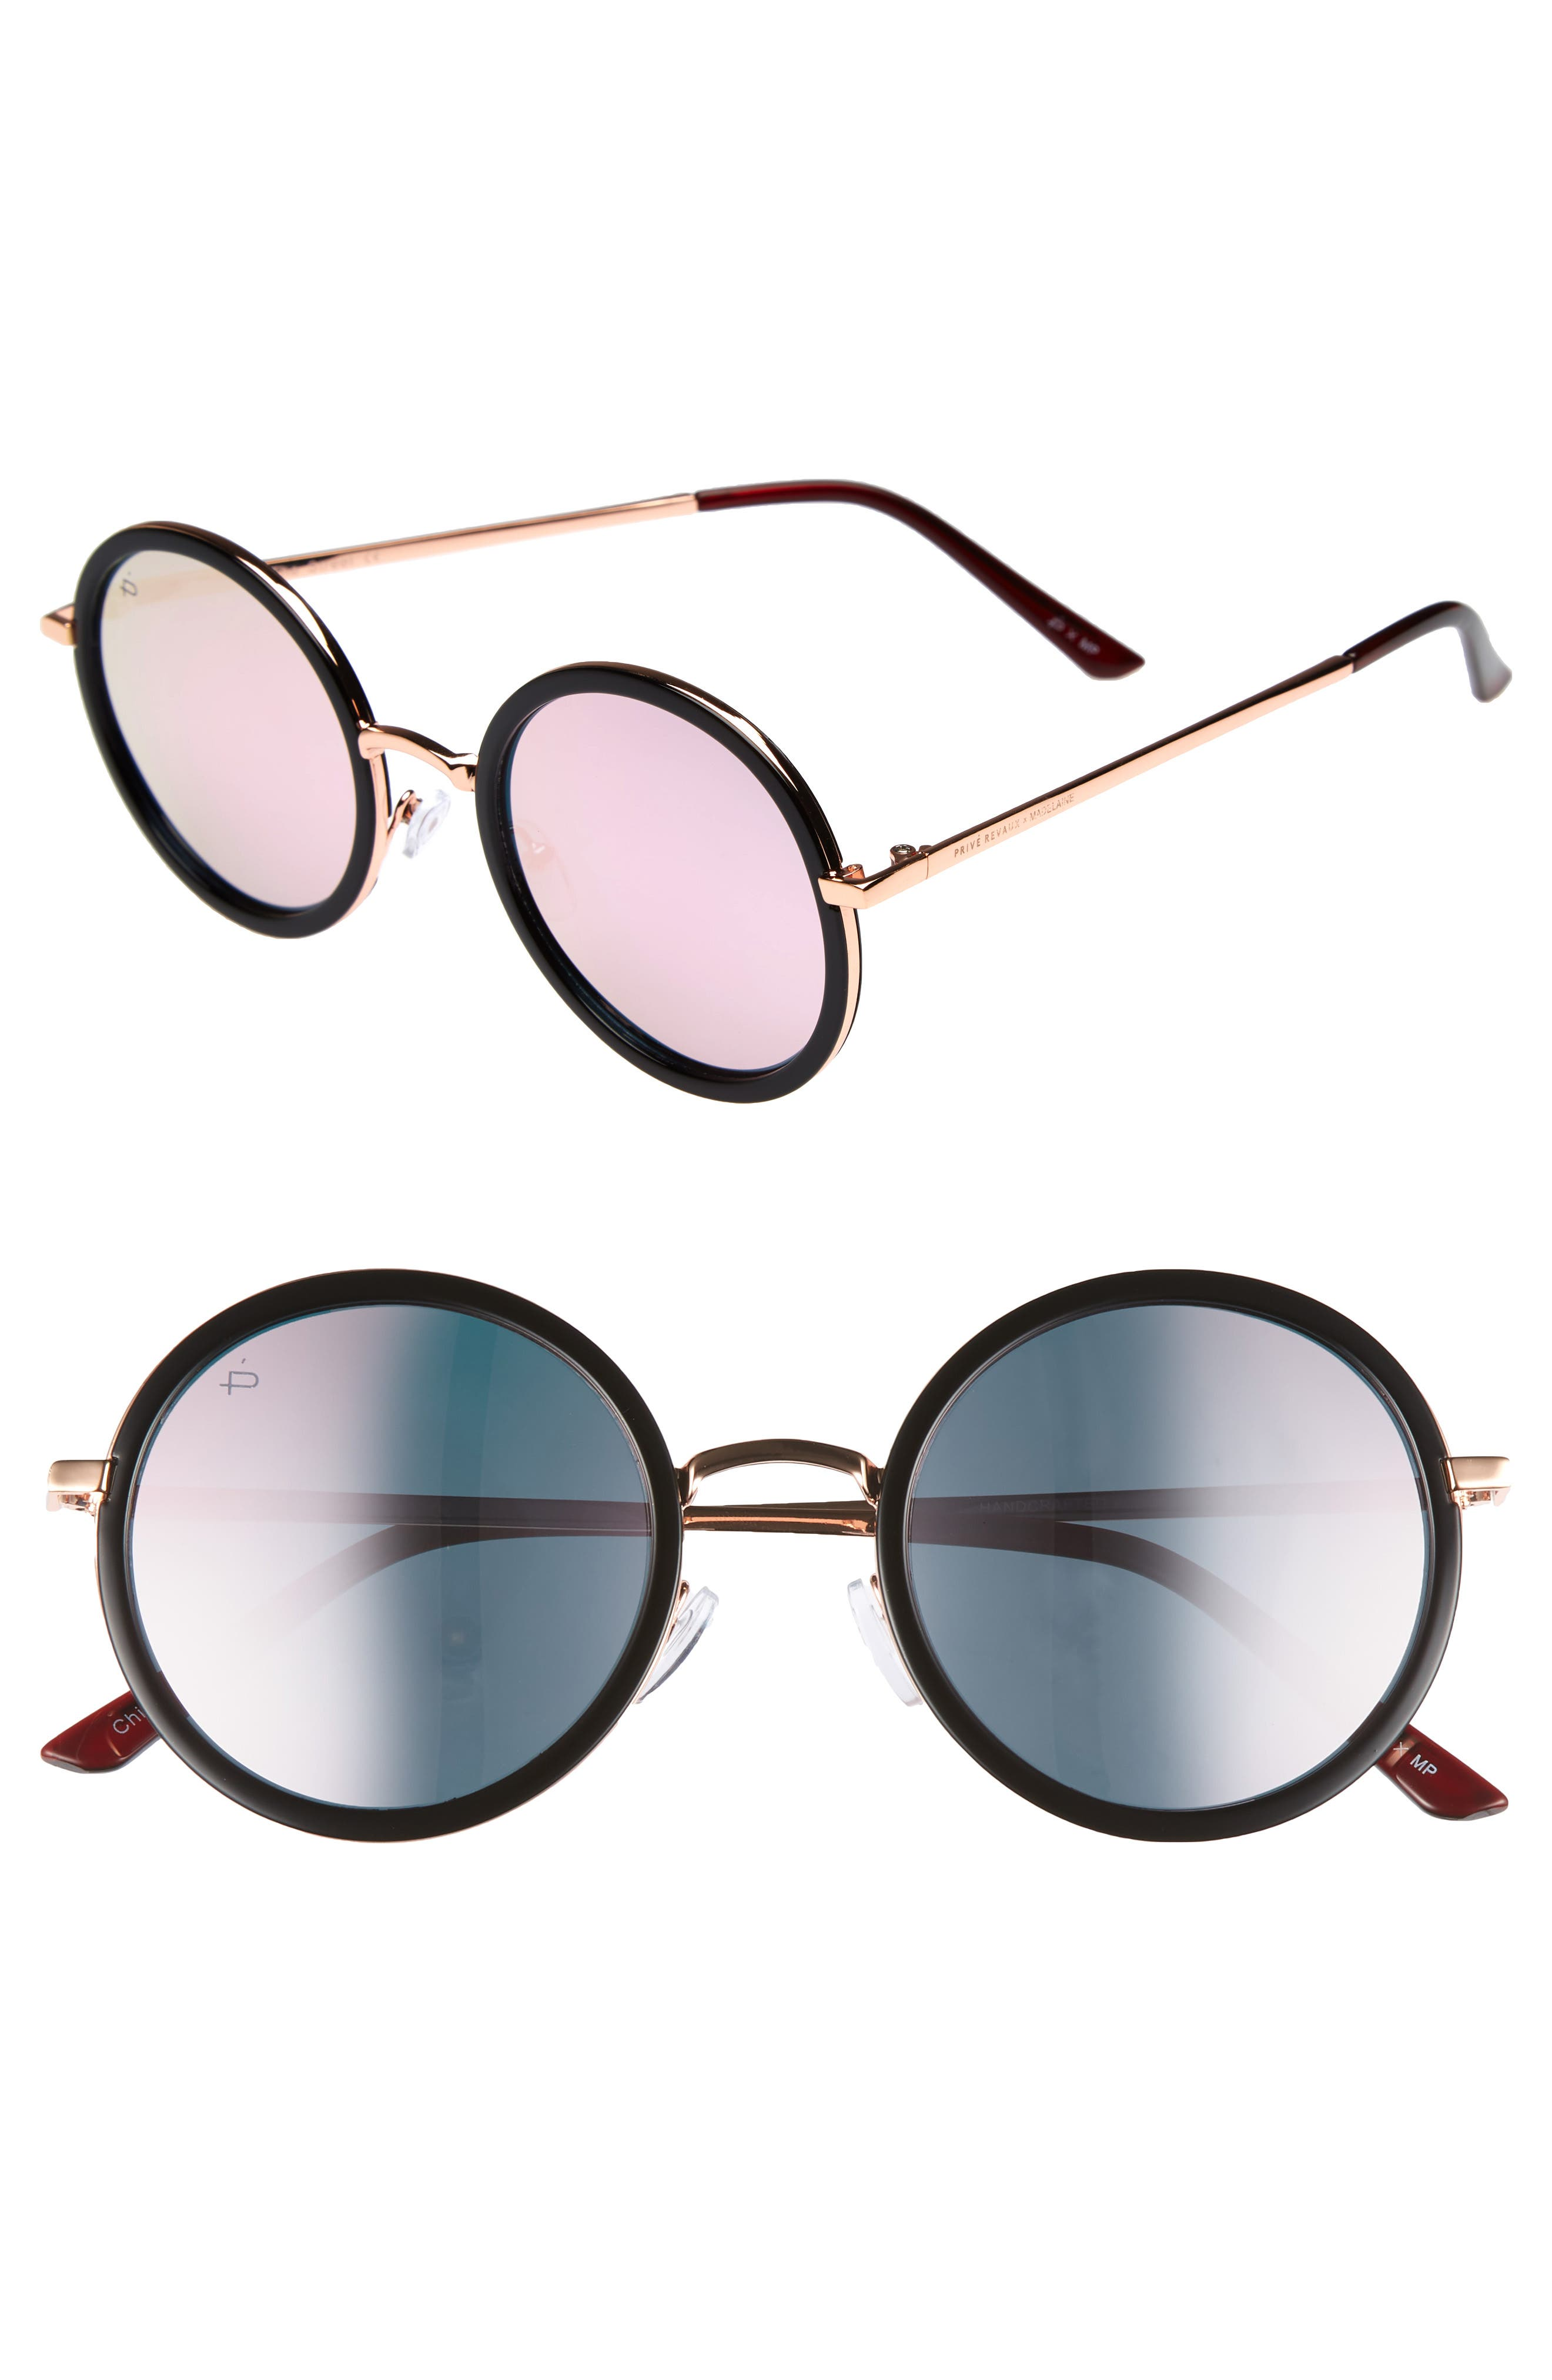 Privé Revaux x Madelaine Petsch The Street 53mm Round Sunglasses,                         Main,                         color, 001